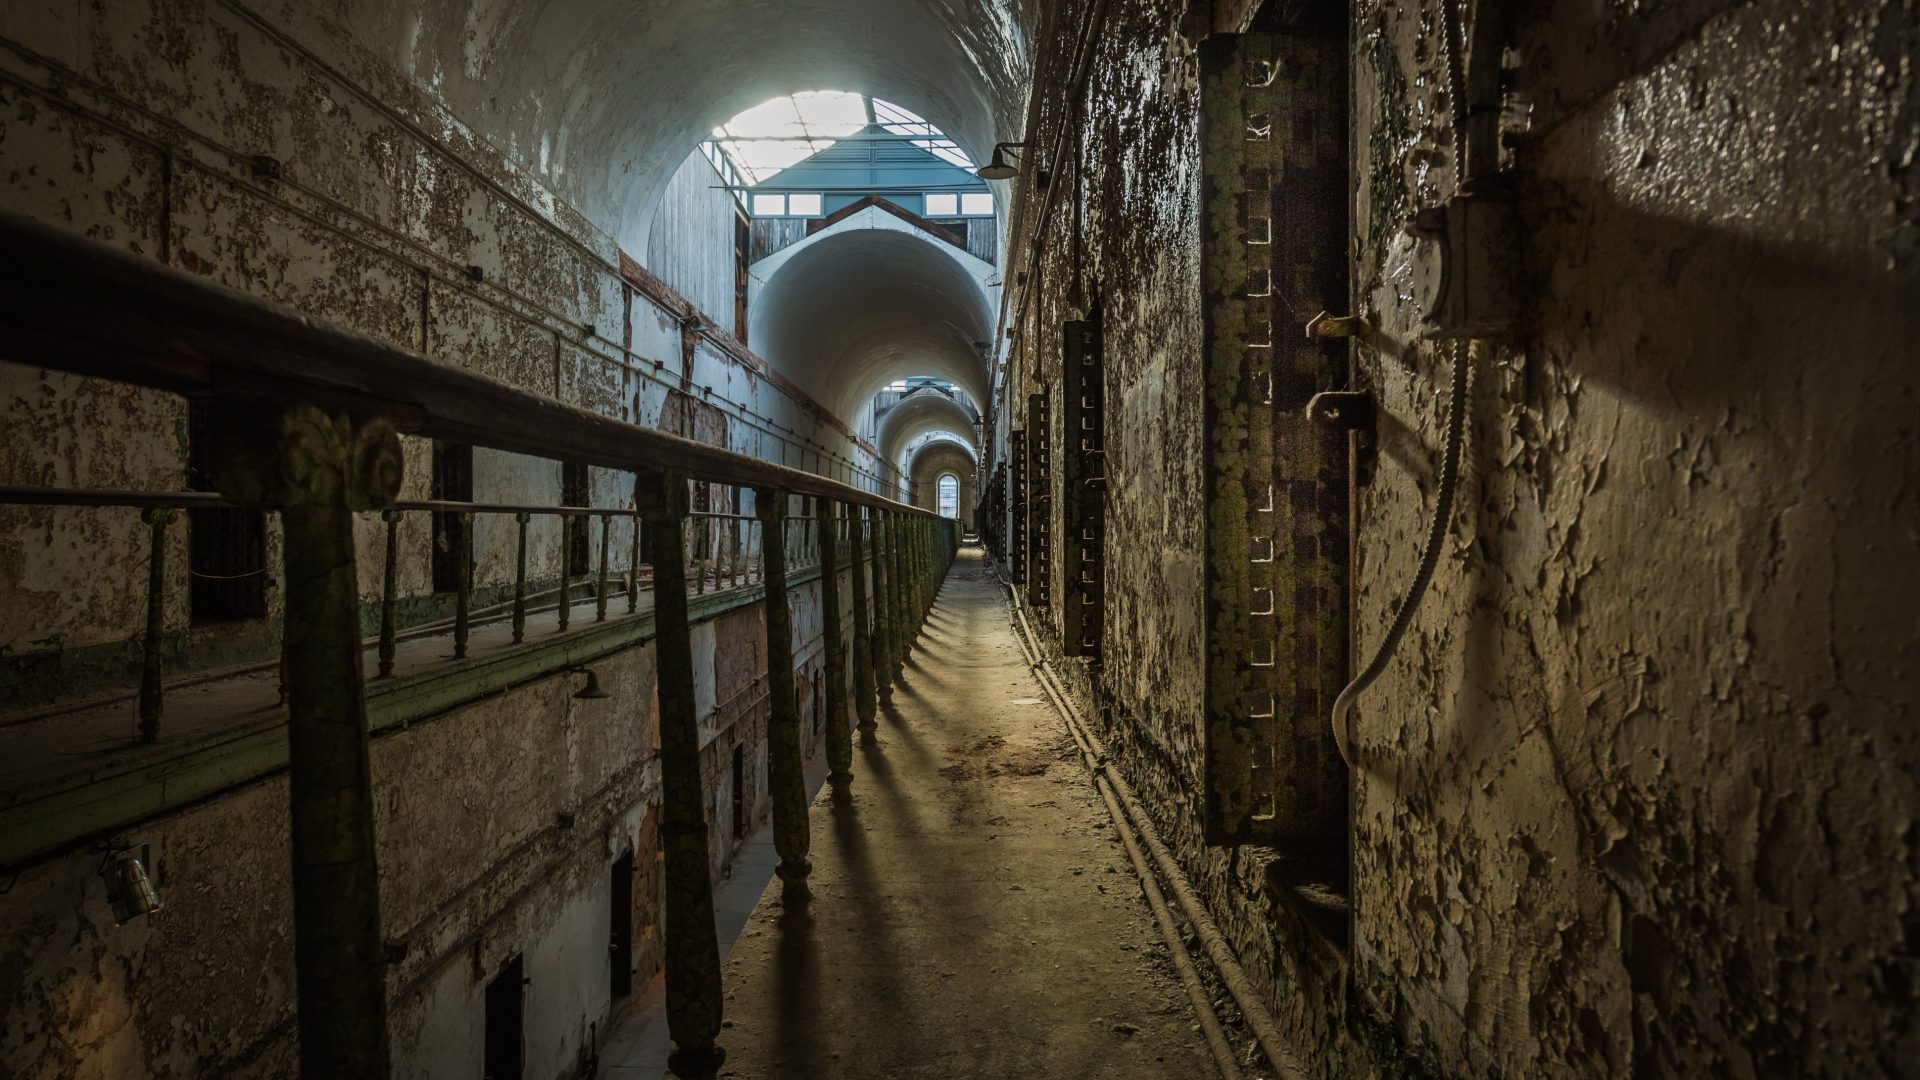 After 1836, cells started to be built with two stories, but no sunlight at Eastern State Penitentiary.